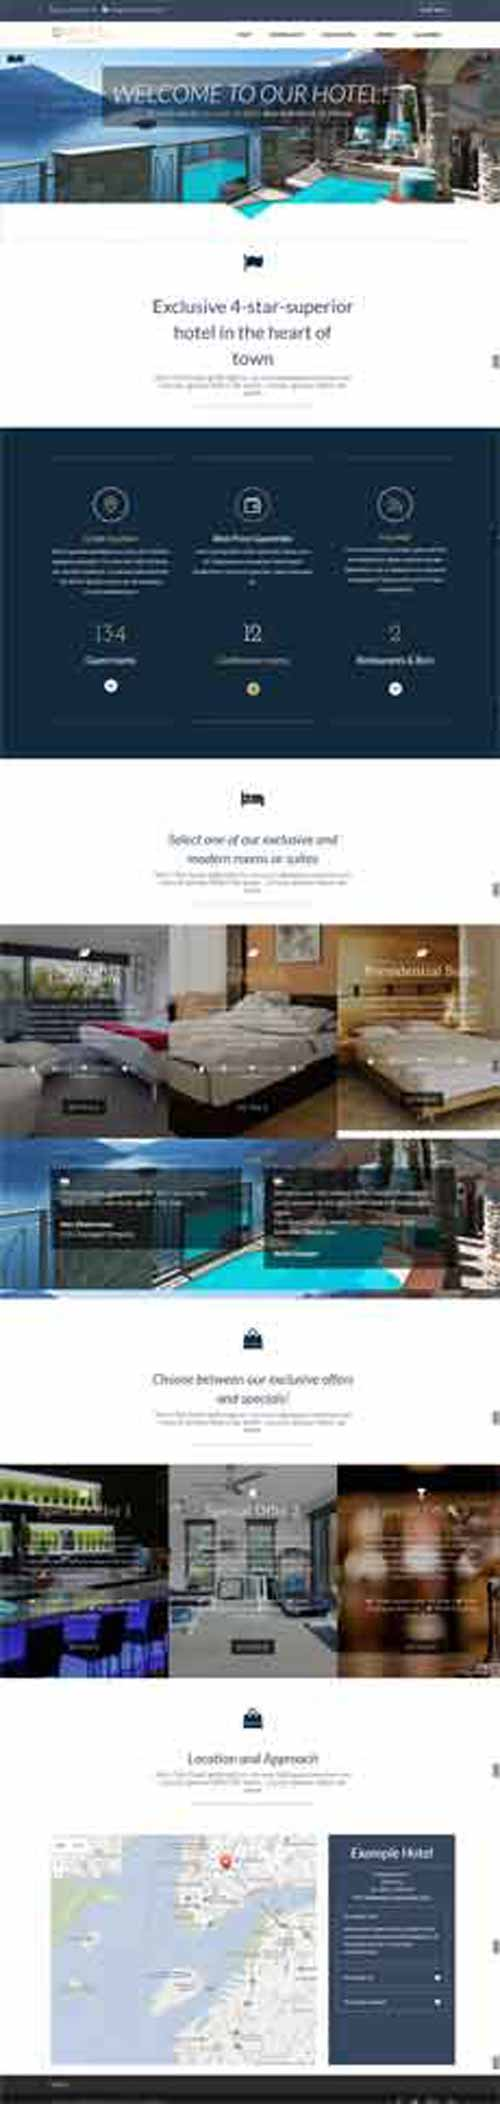 Divi layout for hotel